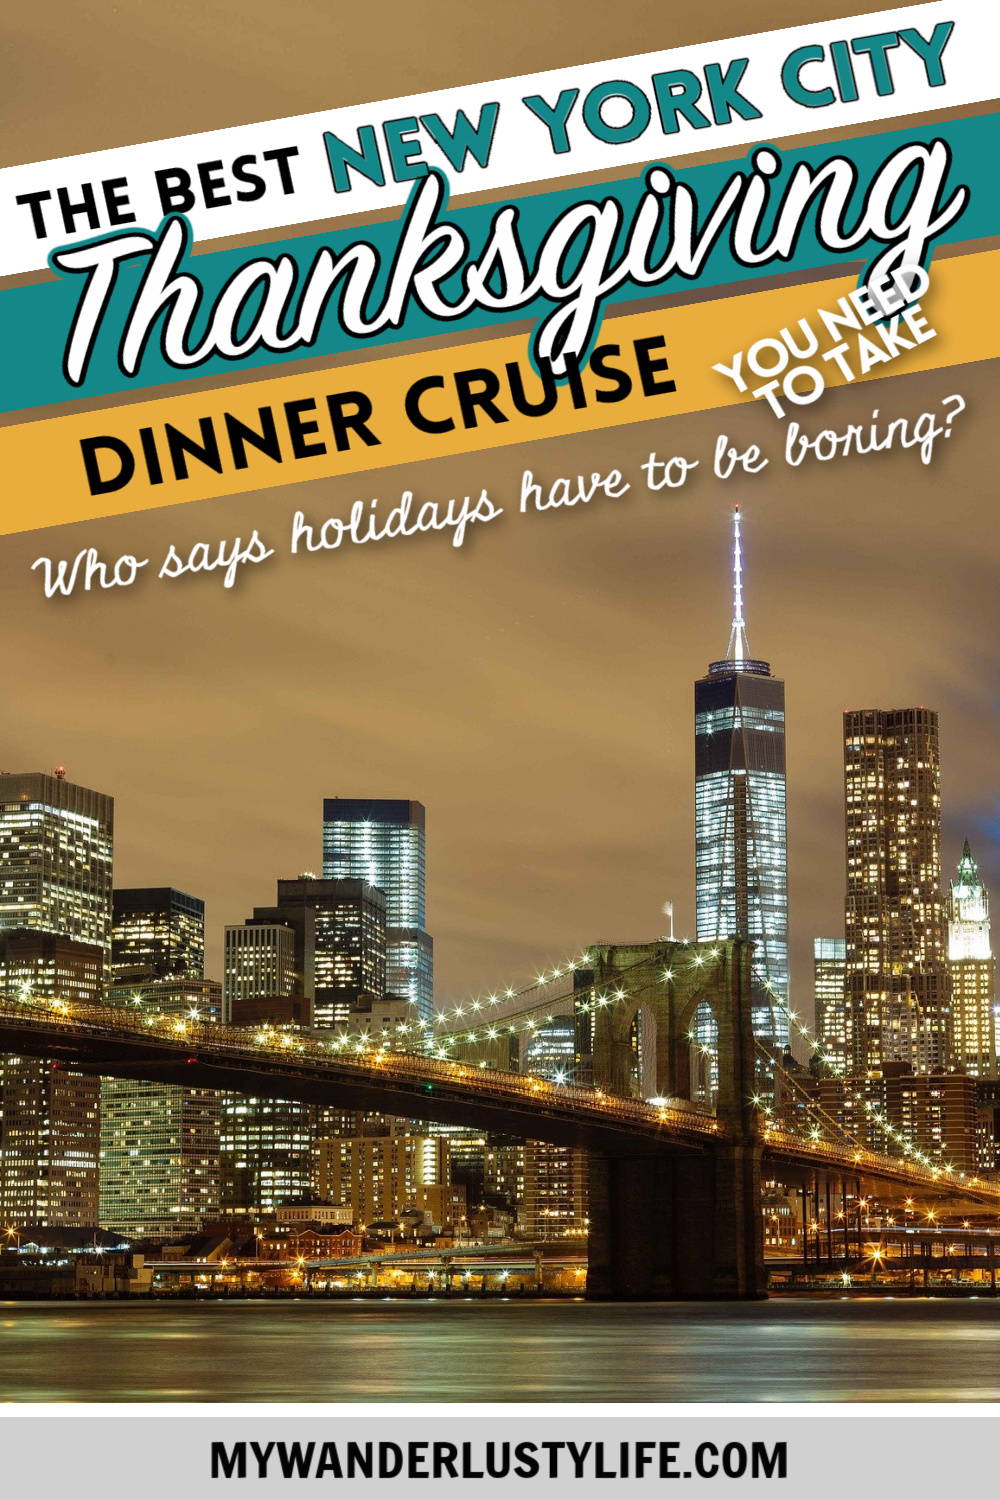 The Best Thanksgiving Dinner Cruise NYC Offers: What You're Missing | Hornblower Thanksgiving Cruises, New York City #manhattan #newyorkcity #thanksgiving #dinnercruise